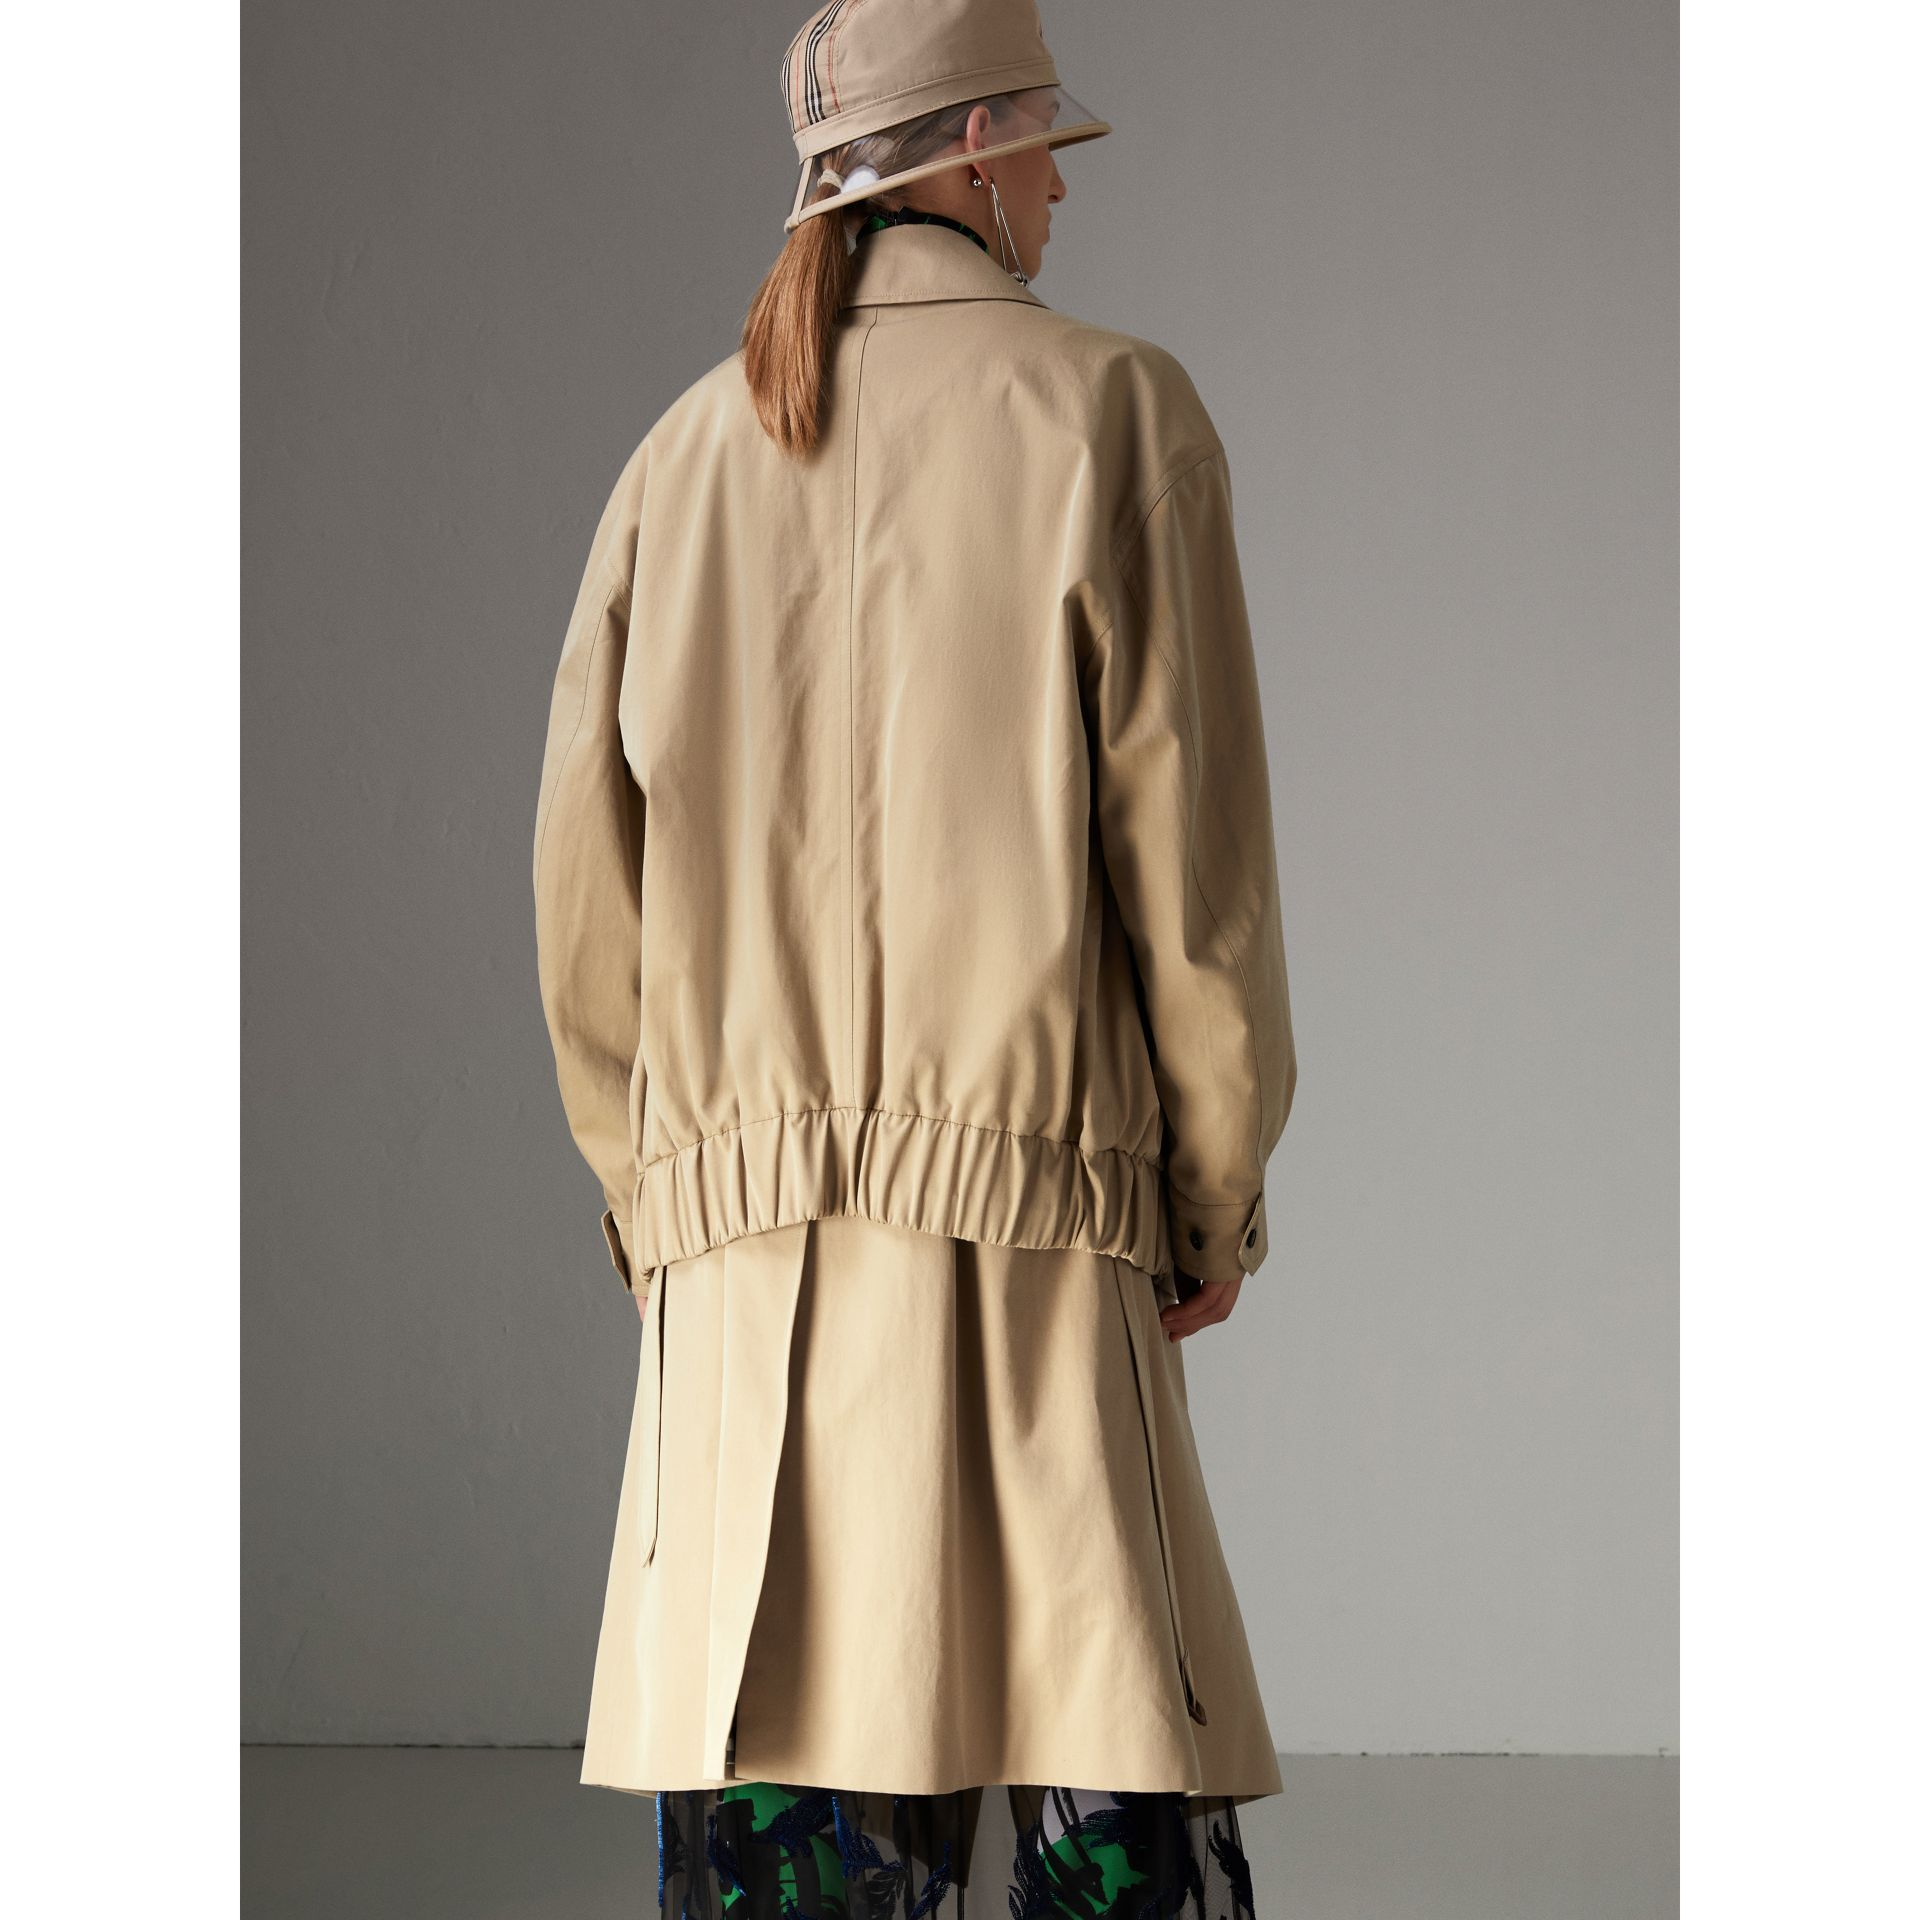 Tropical Gabardine Reconstructed Harrington Jacket in Honey - Women | Burberry United Kingdom - gallery image 2